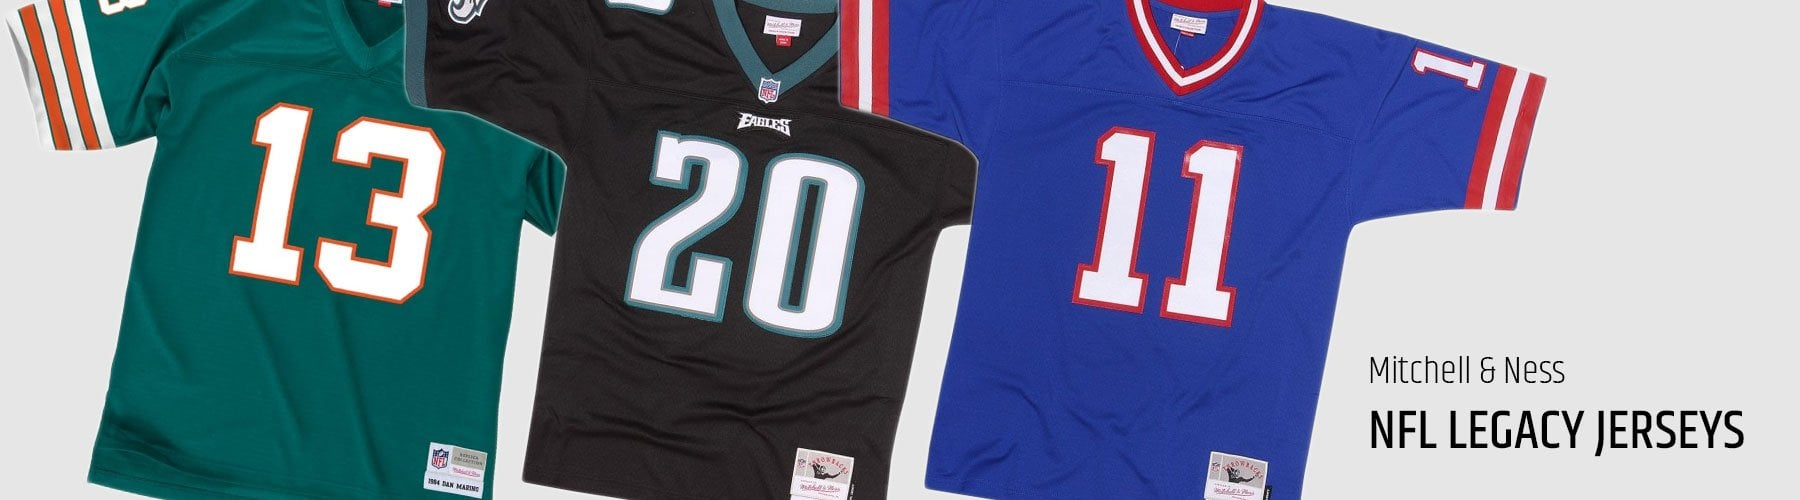 USAsports co uk   Europe's online store for NFL, NHL, MLB and NBA